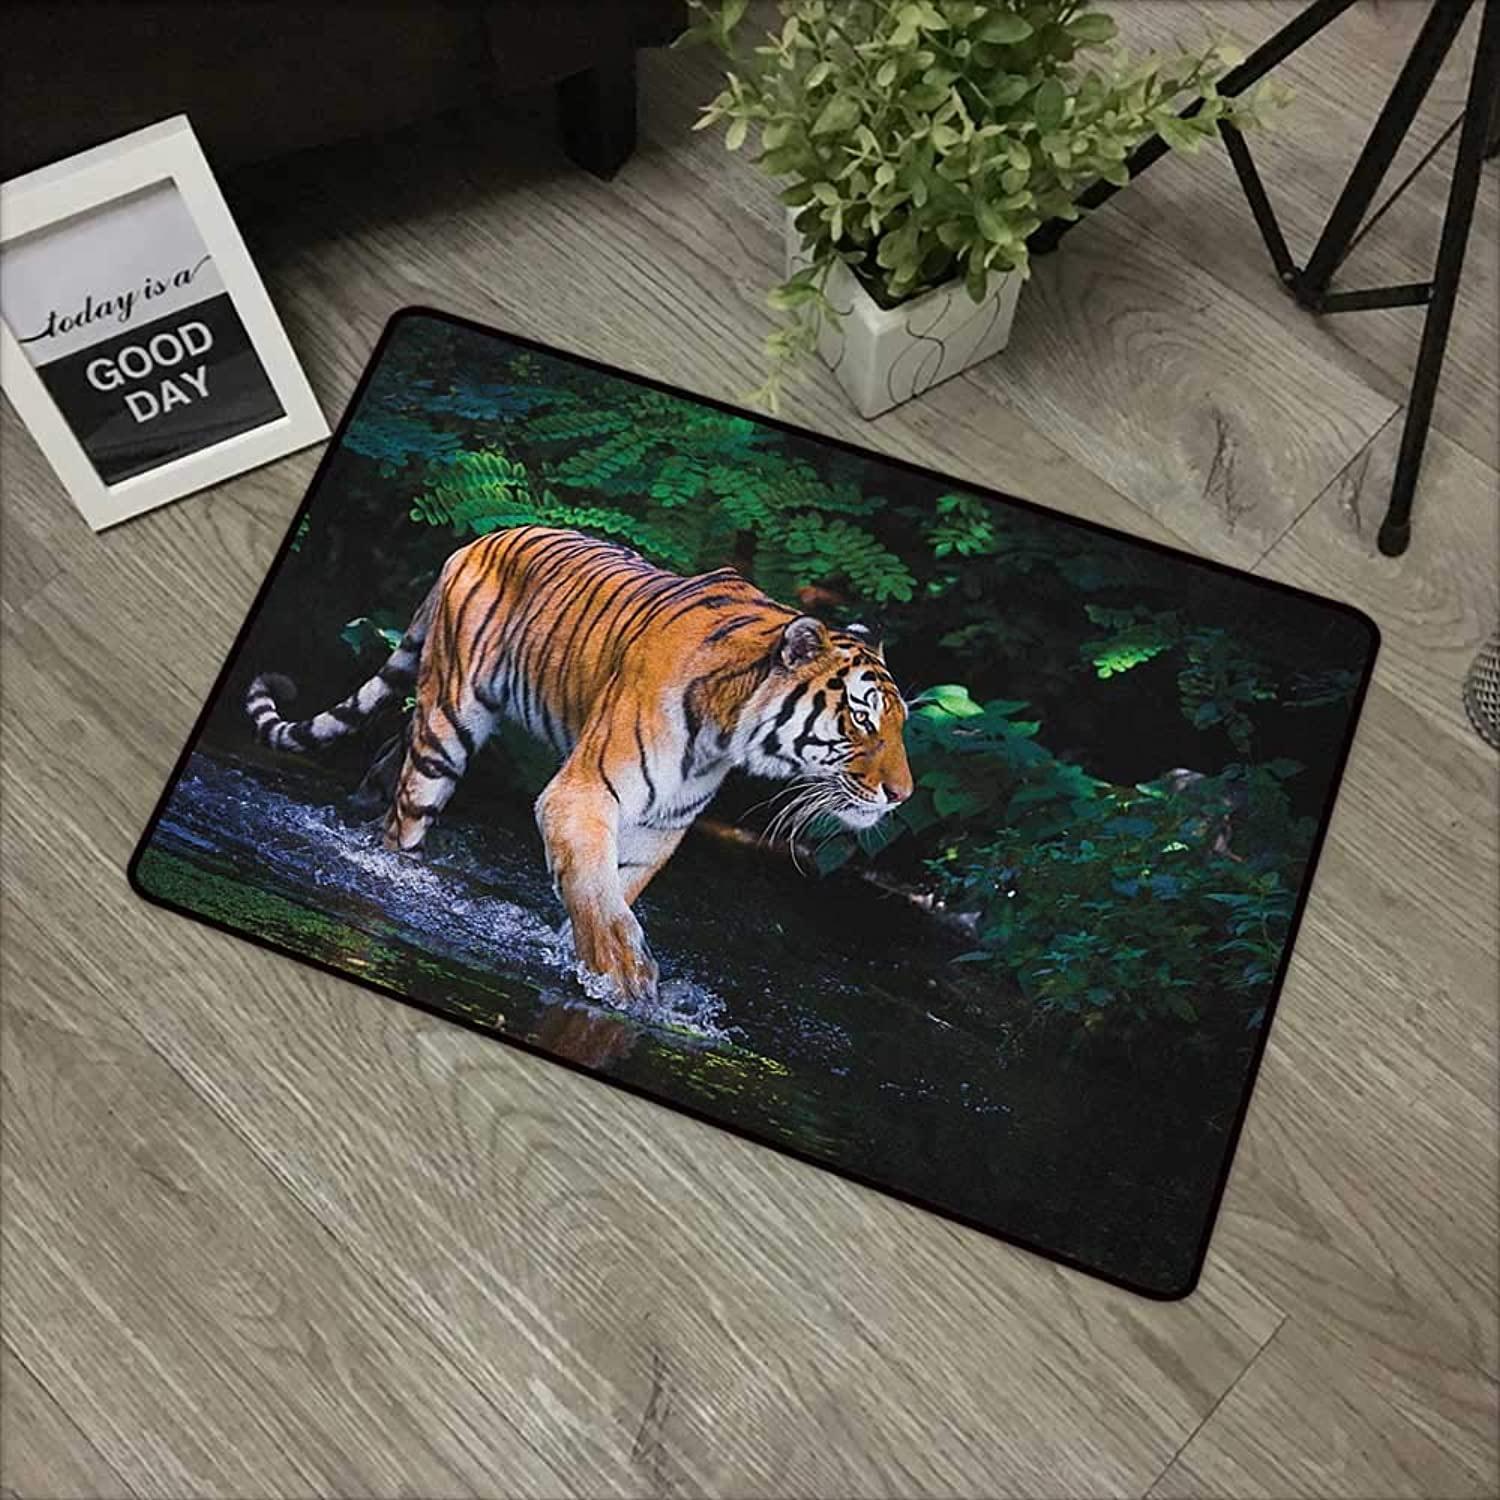 Interior Door mat W35 x L59 INCH Safari,Tiger in Water Stream Hunting Danger Trees Tropical Pond Hiding Captive, Green orange Brown Easy to Clean, no Deformation, no Fading Non-Slip Door Mat Carpet